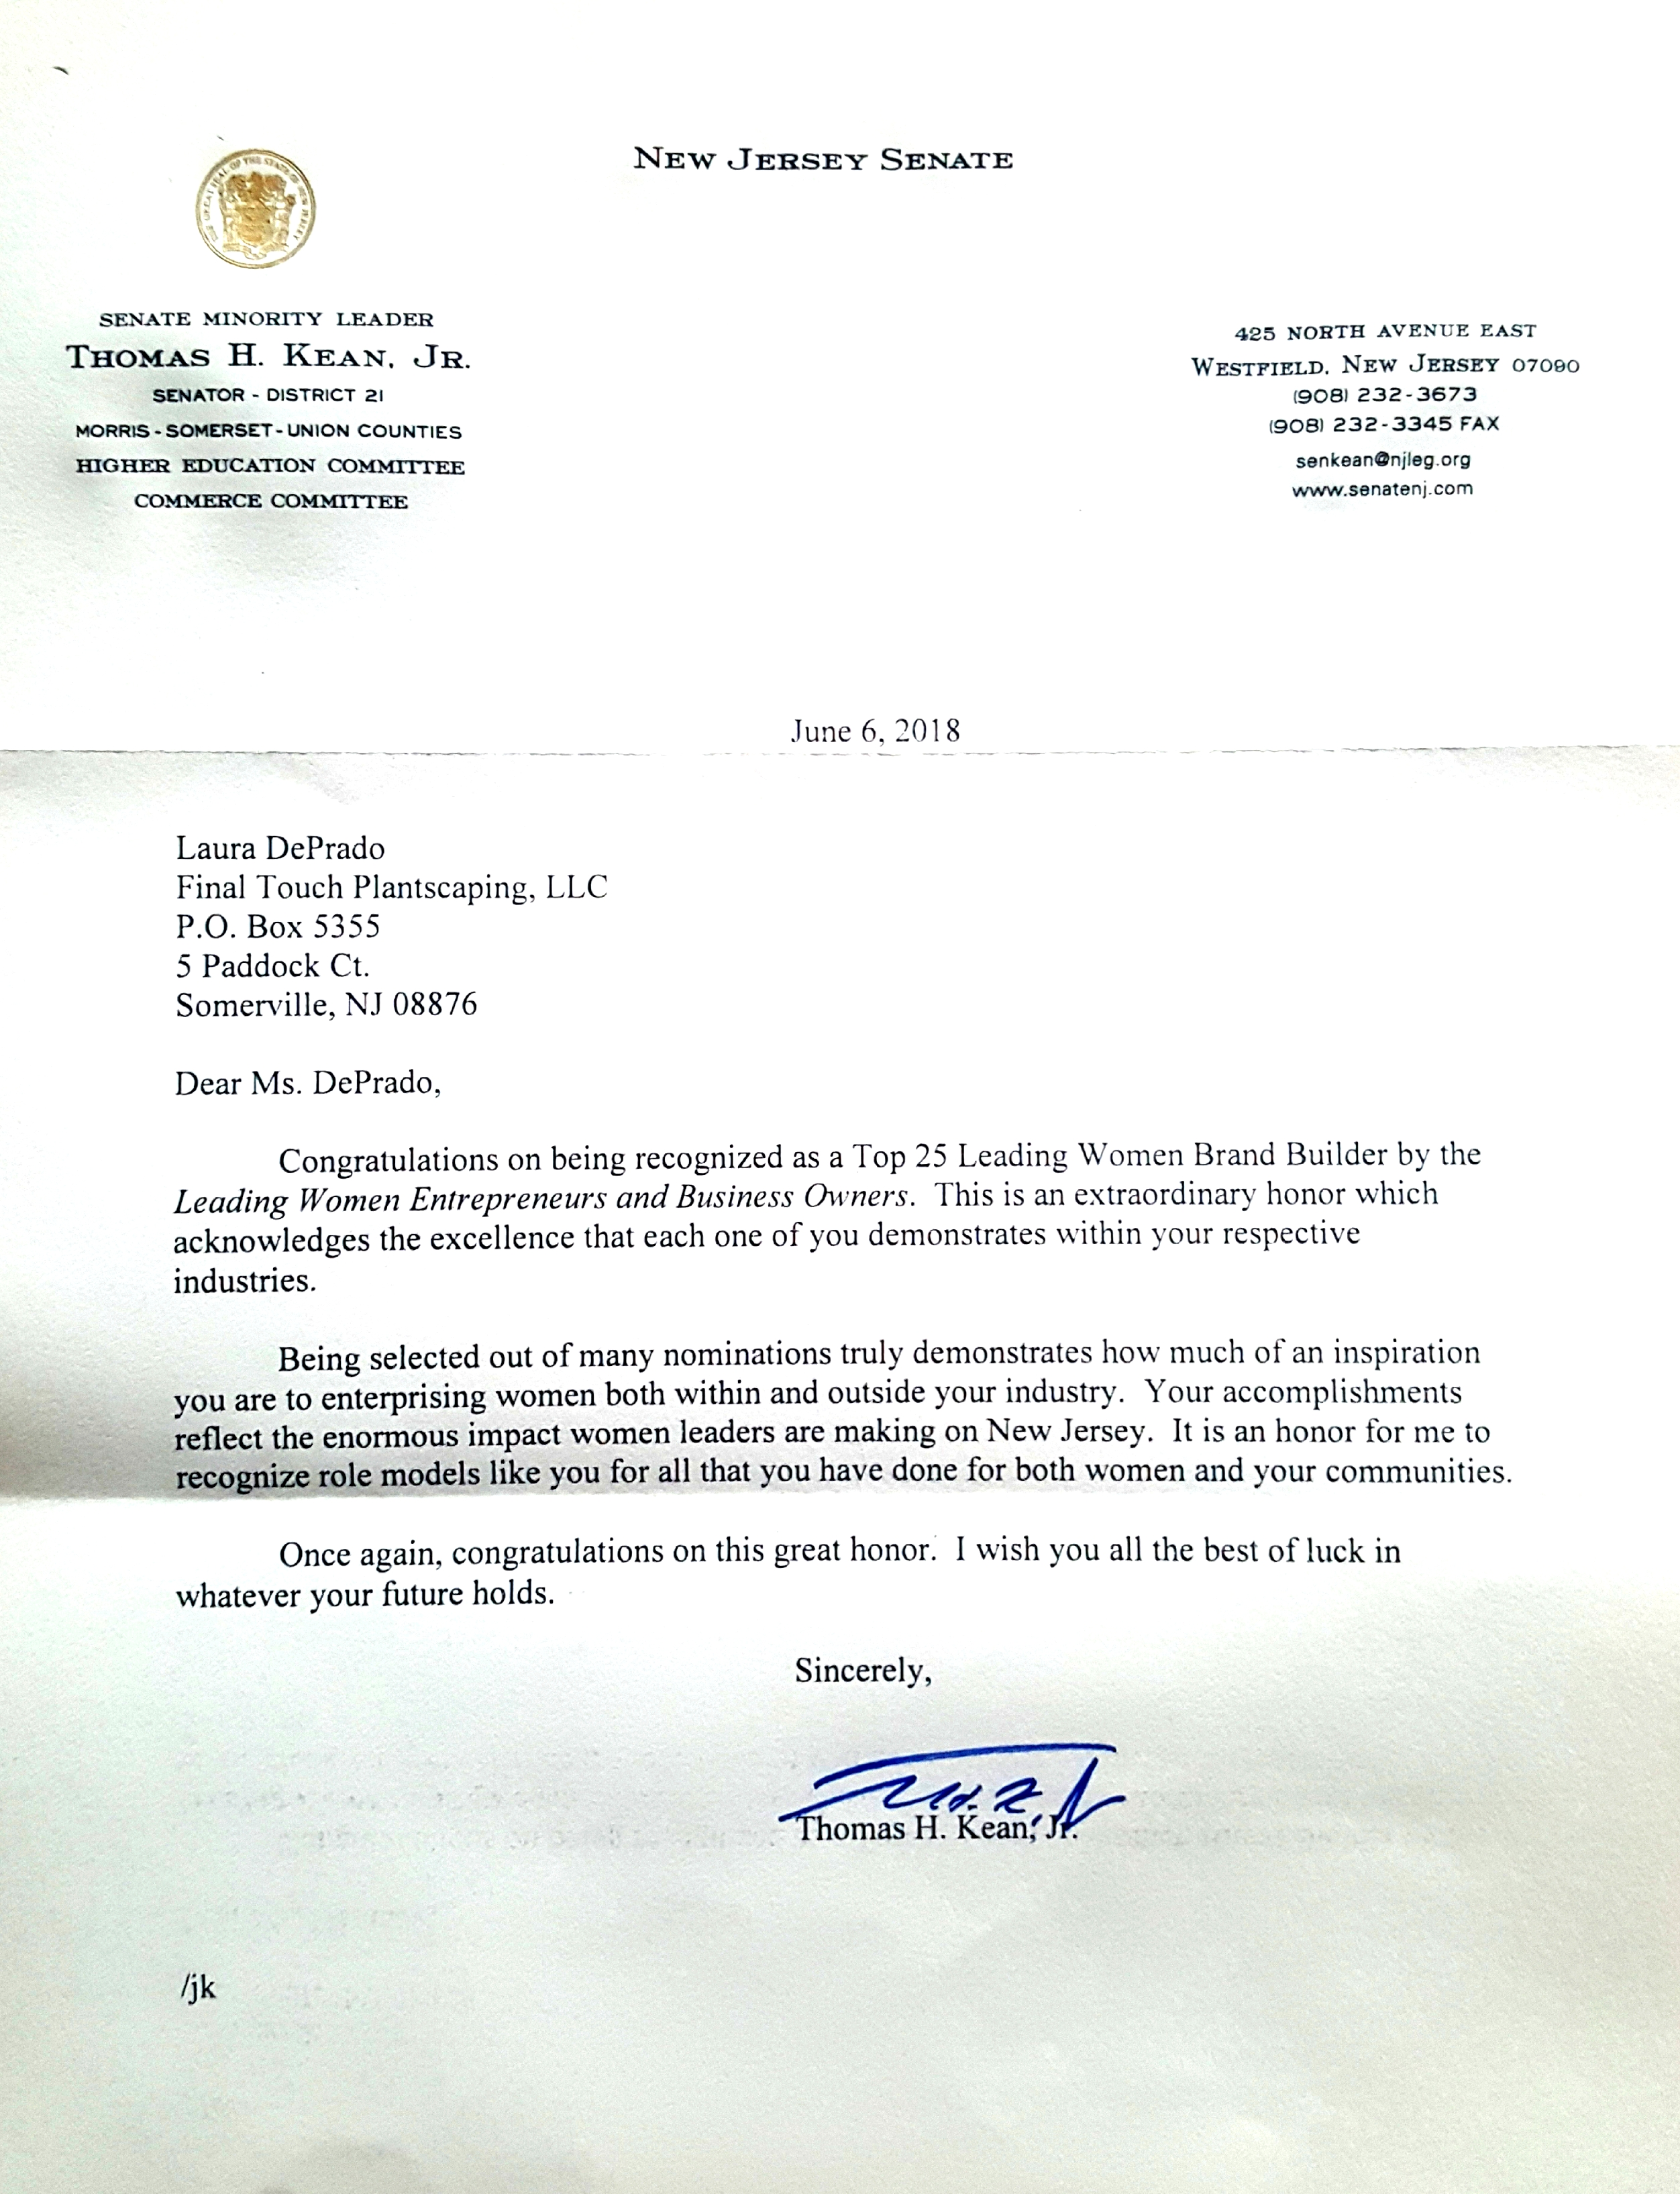 Congratulations-Letter-from-New-Jersey-Senate-Tom-Kean